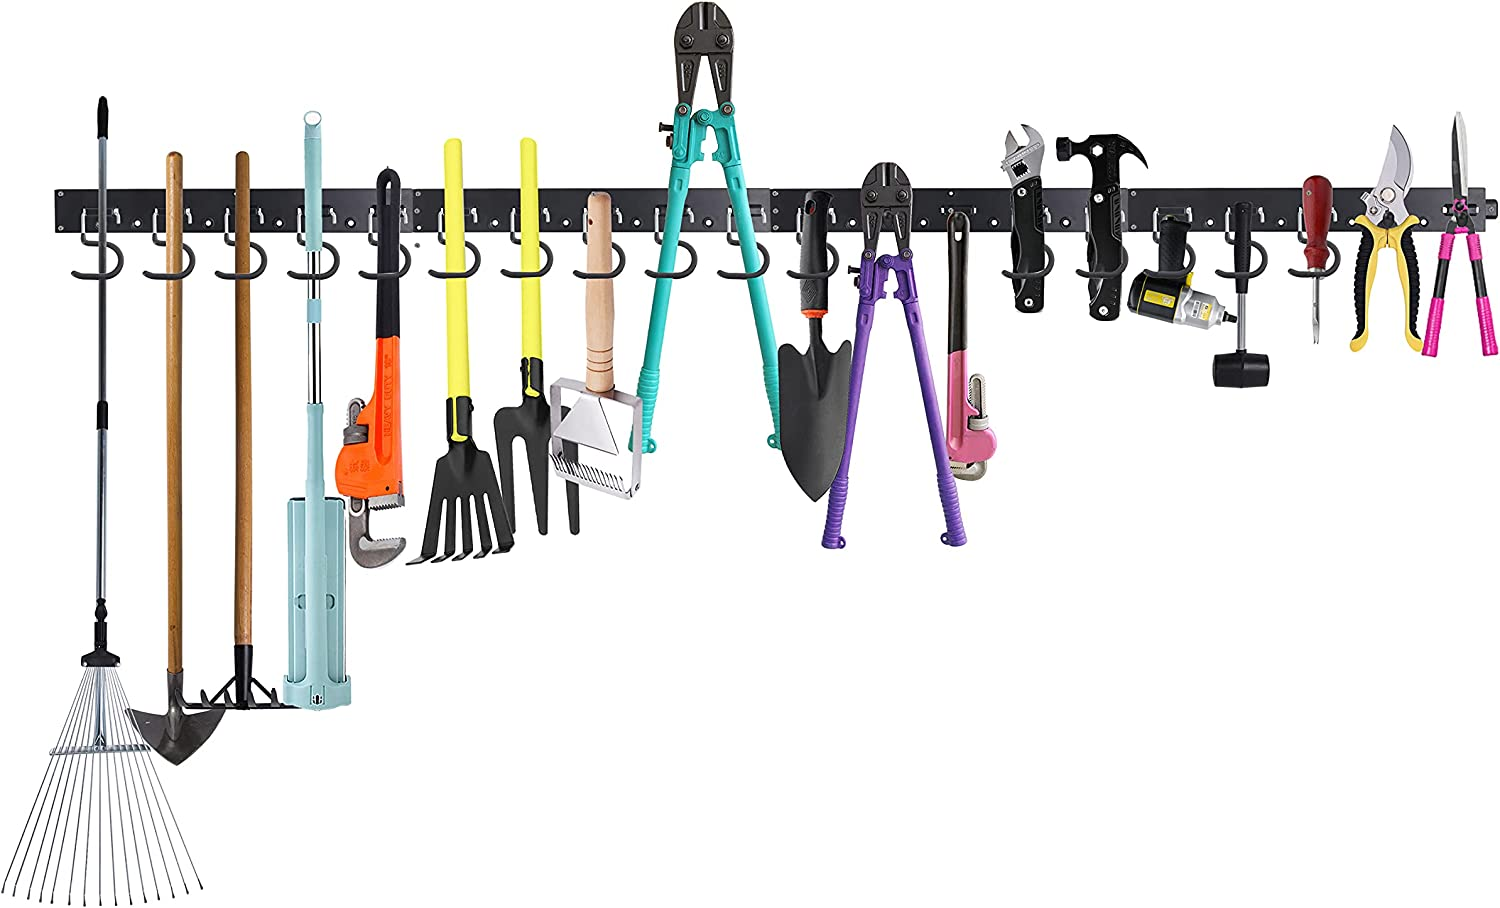 Finnhomy 64 Inch Garage Storage Hooks, Wall Mounted Tool Organizers,Wall Organizer for Garden Tools and Yard Tools, Tool Hanger and Mop Broom Holder with 4 Rails 20 Hooks & Bonus Storage Straps